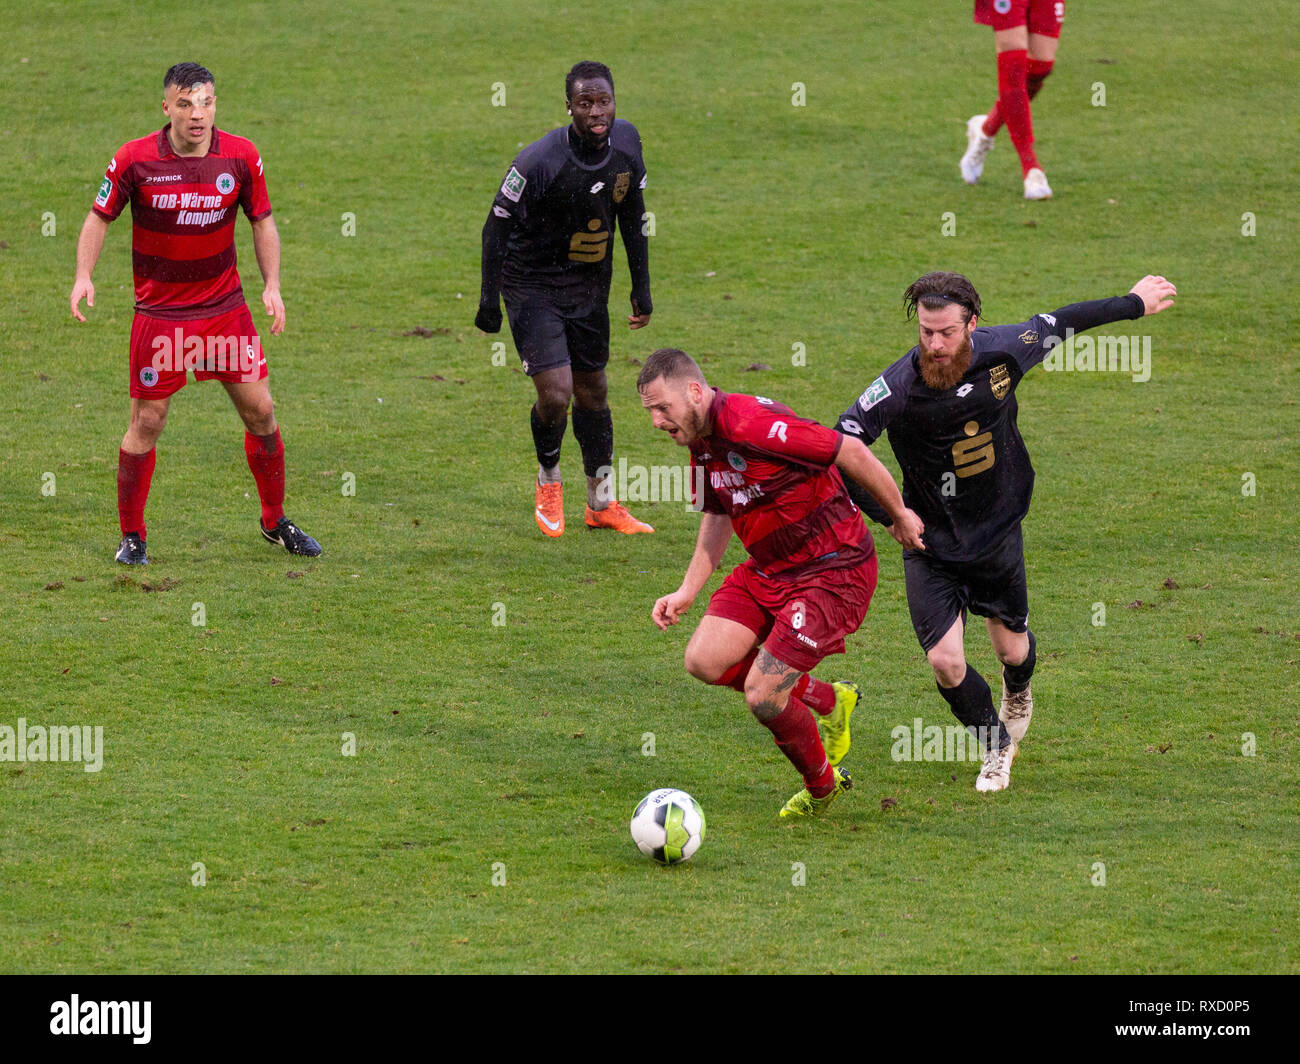 sports, football, Regional League West, 2018/2019, Rot Weiss Oberhausen vs Bonner SC 01/04 4-0, Stadium Niederrhein in Oberhausen, scene of the match, f.l.t.r. Christian Maerz (RWO), Daniel Somuah (Bonn), Dario Schumacher (RWO), Markus Wipperfuerth (Bonn) Stock Photo